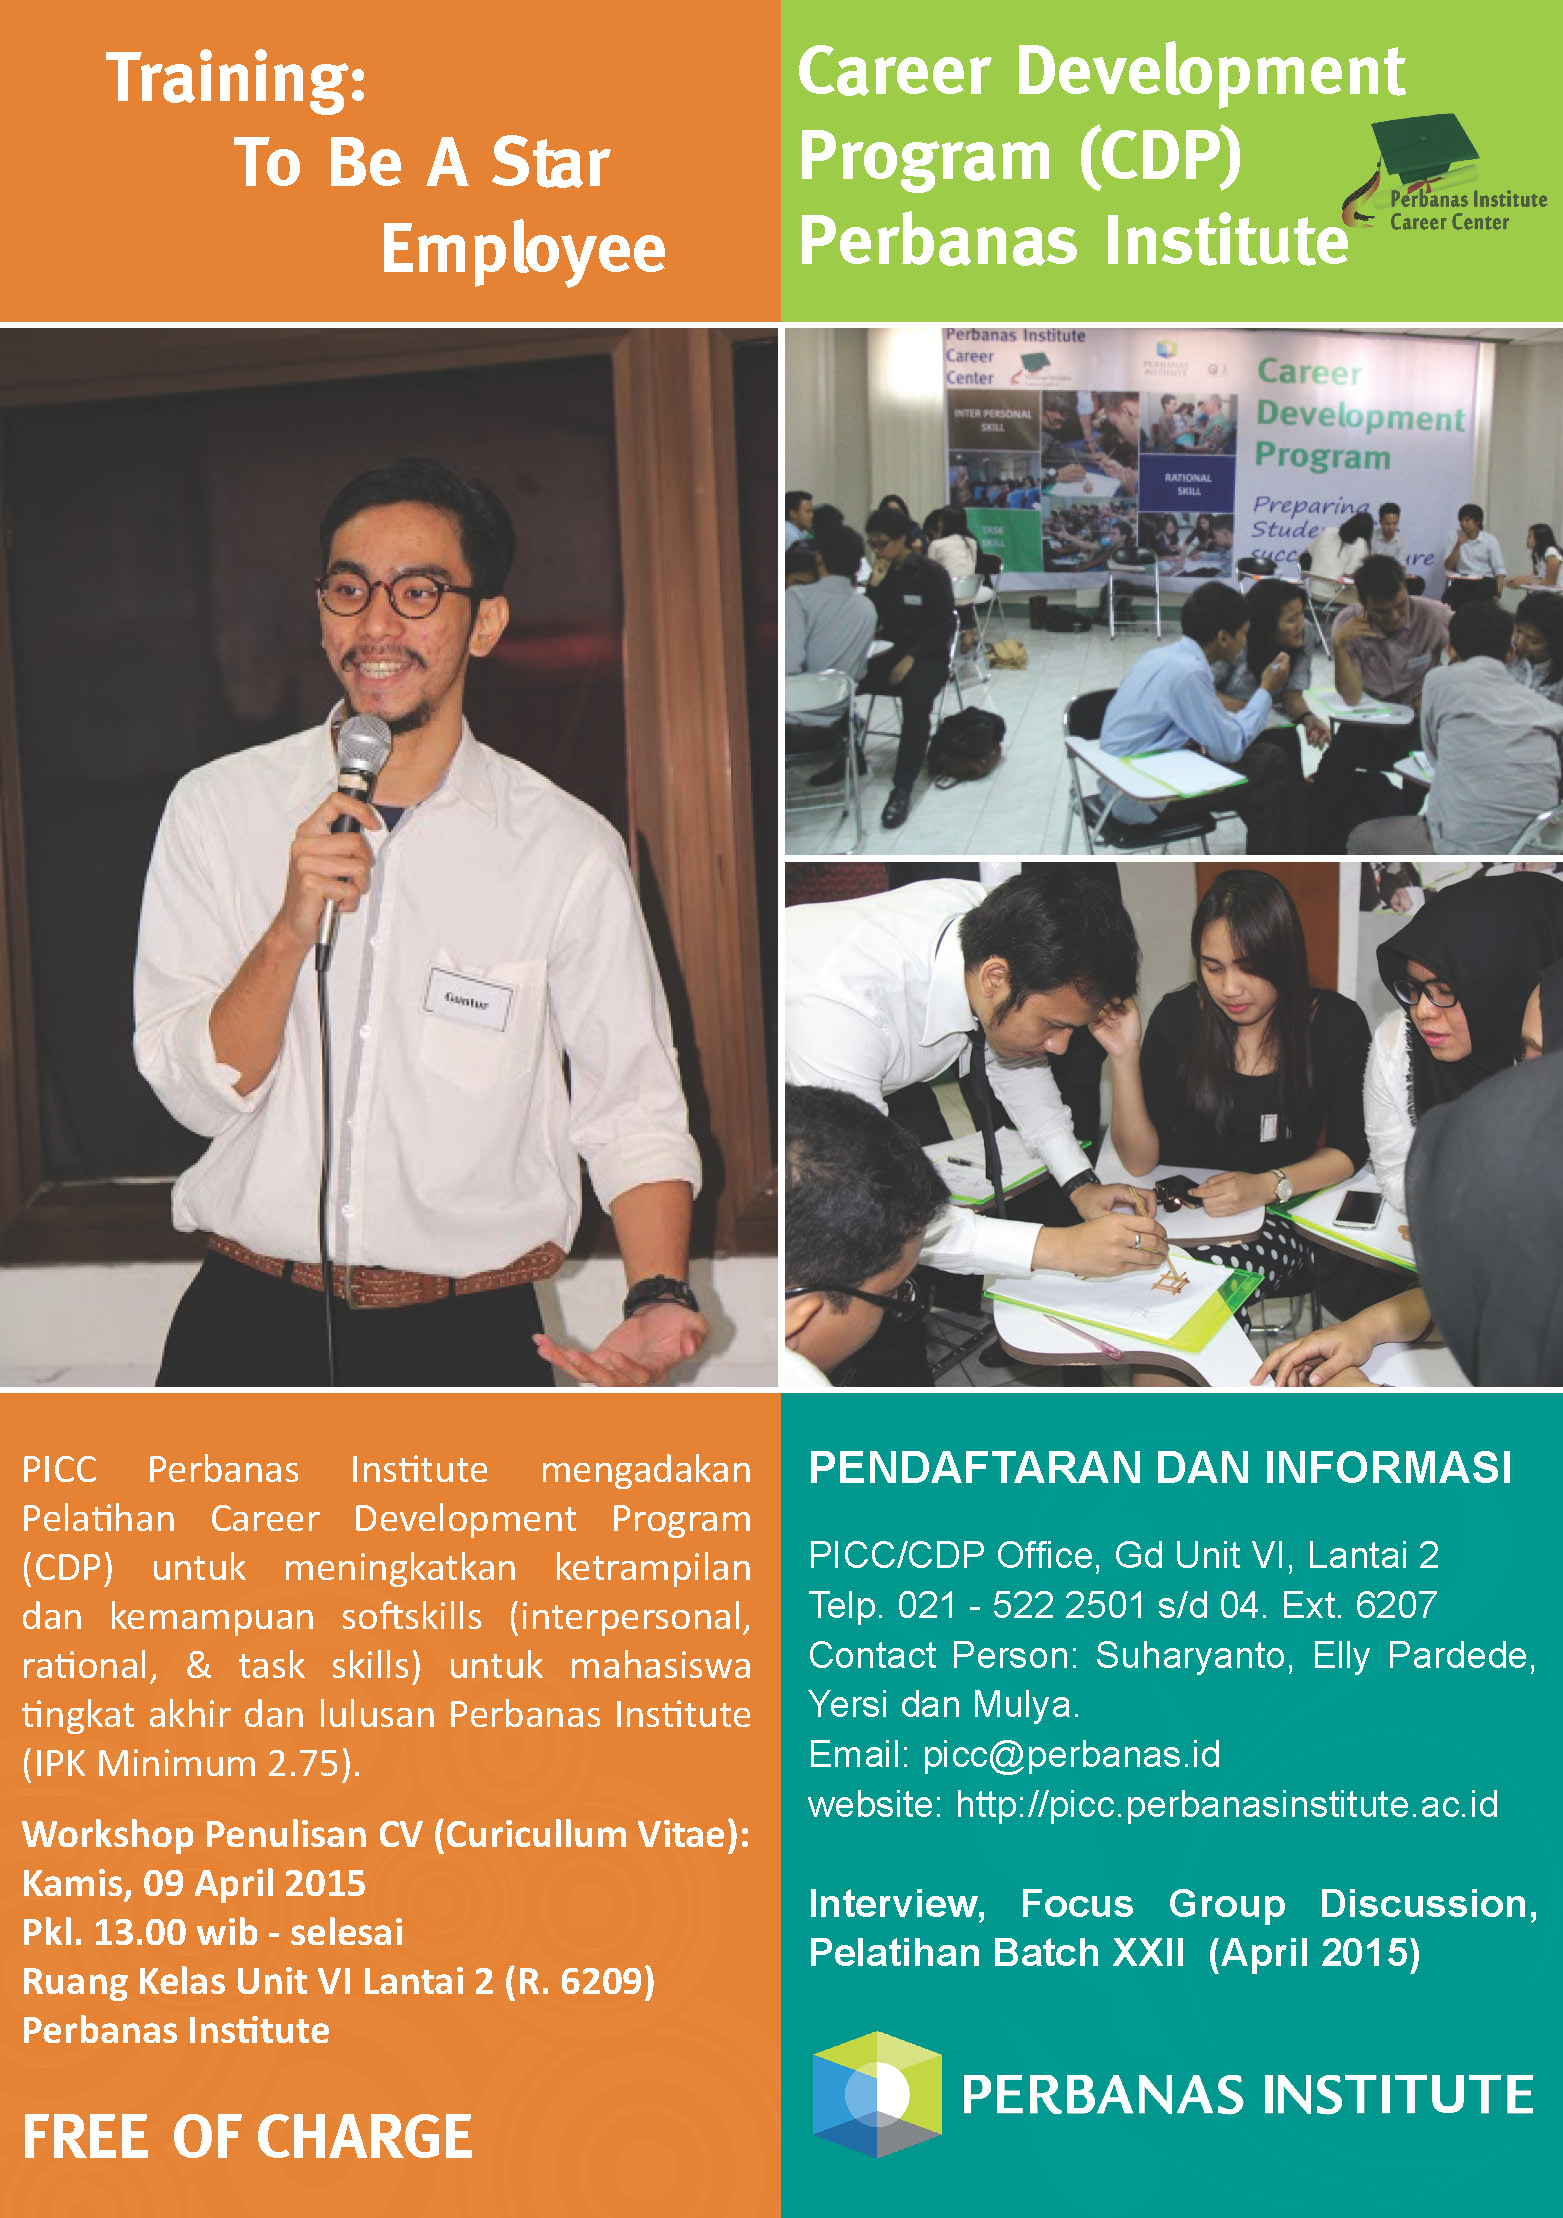 Training Career Development Program (CDP) Perbanas Institute Batch XXII